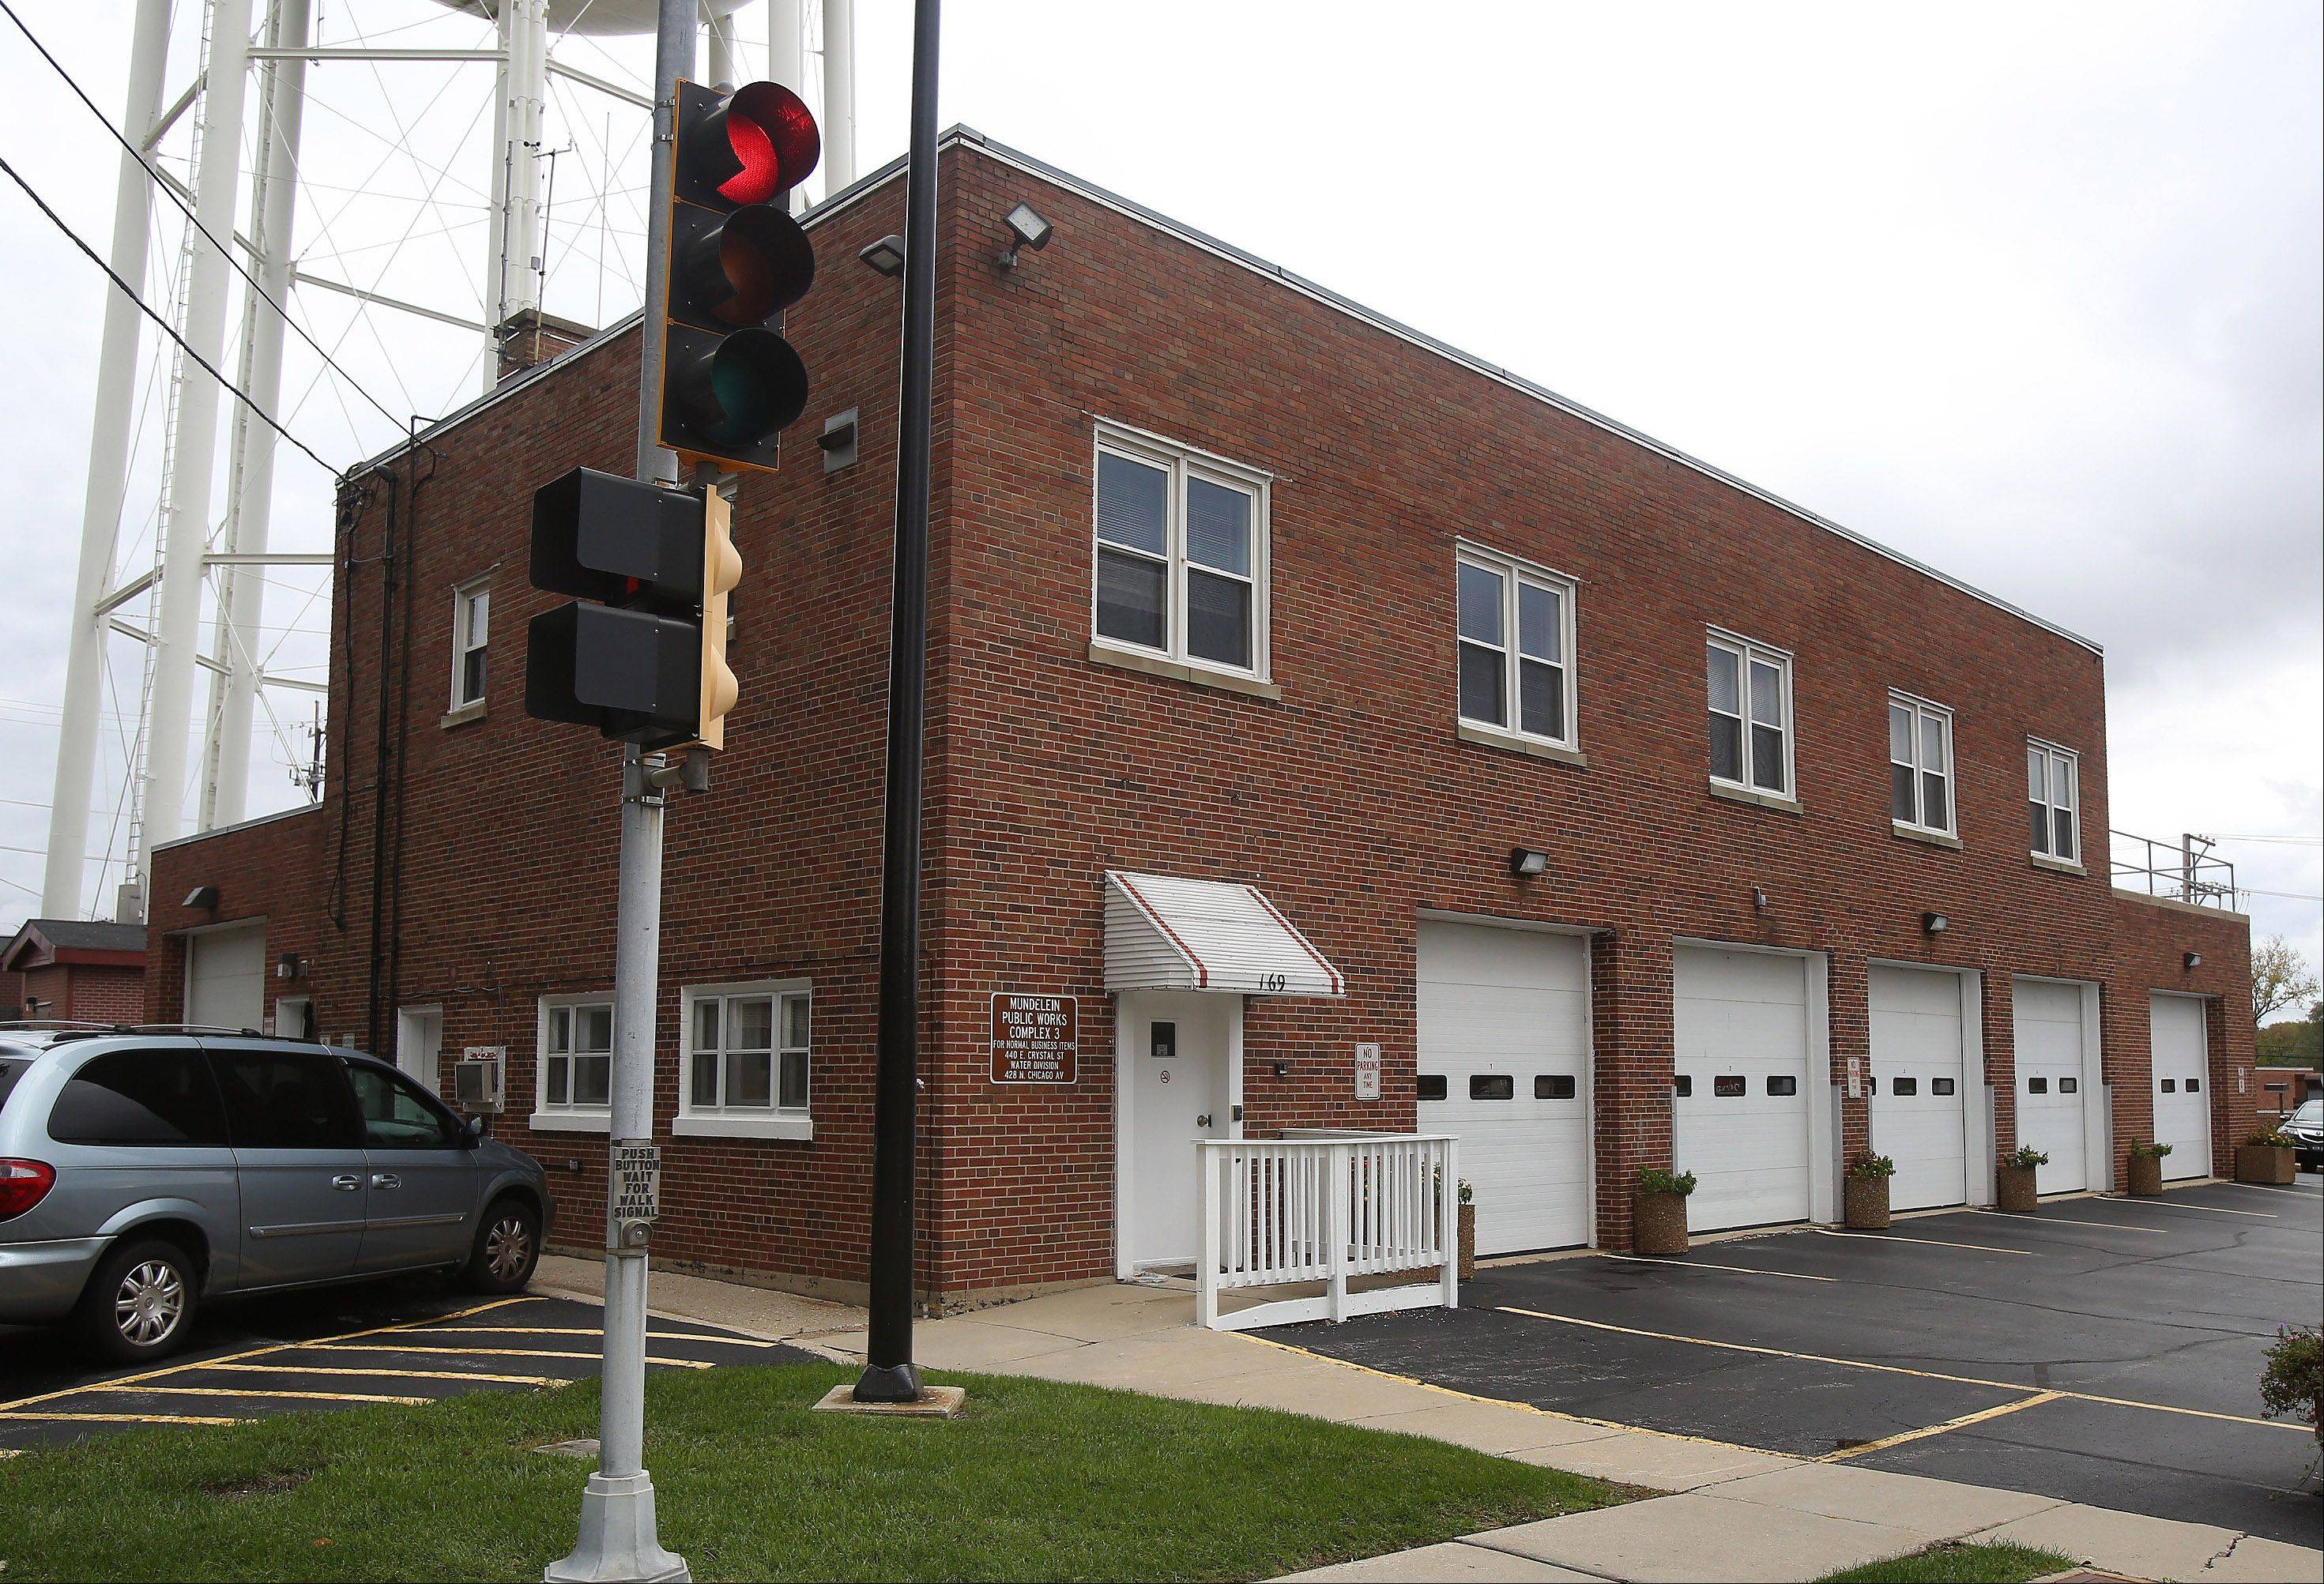 Mundelein's public works department facility maintenance center at 169 N. Seymour Ave. is another facility the village plans to consolidate.